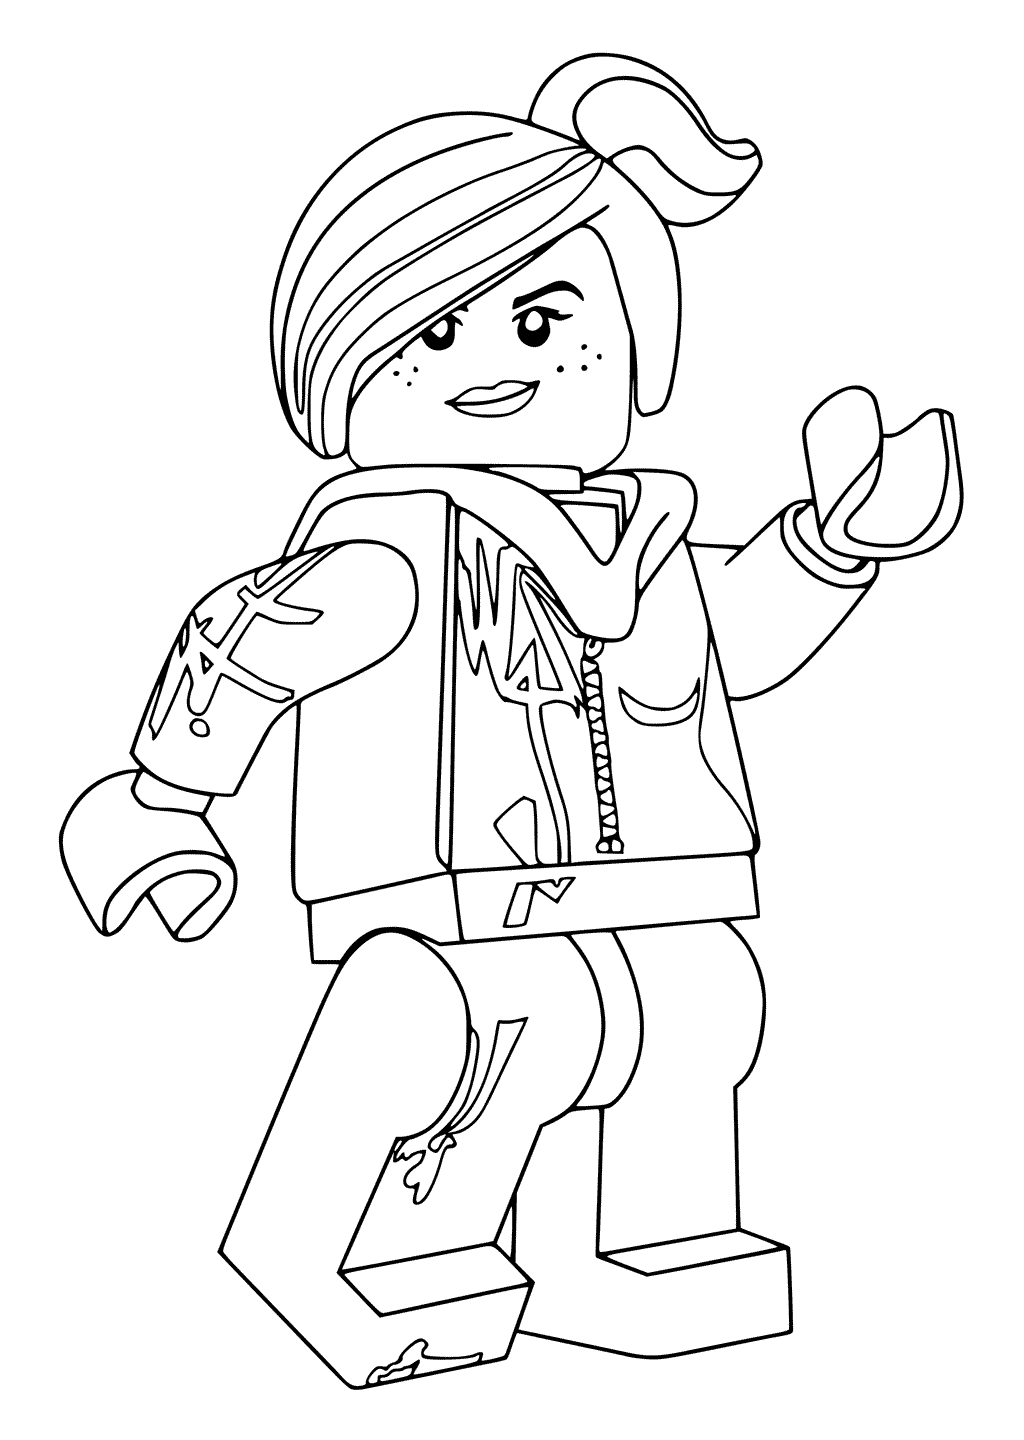 Wyldstyle Lego Movie Coloring Pages